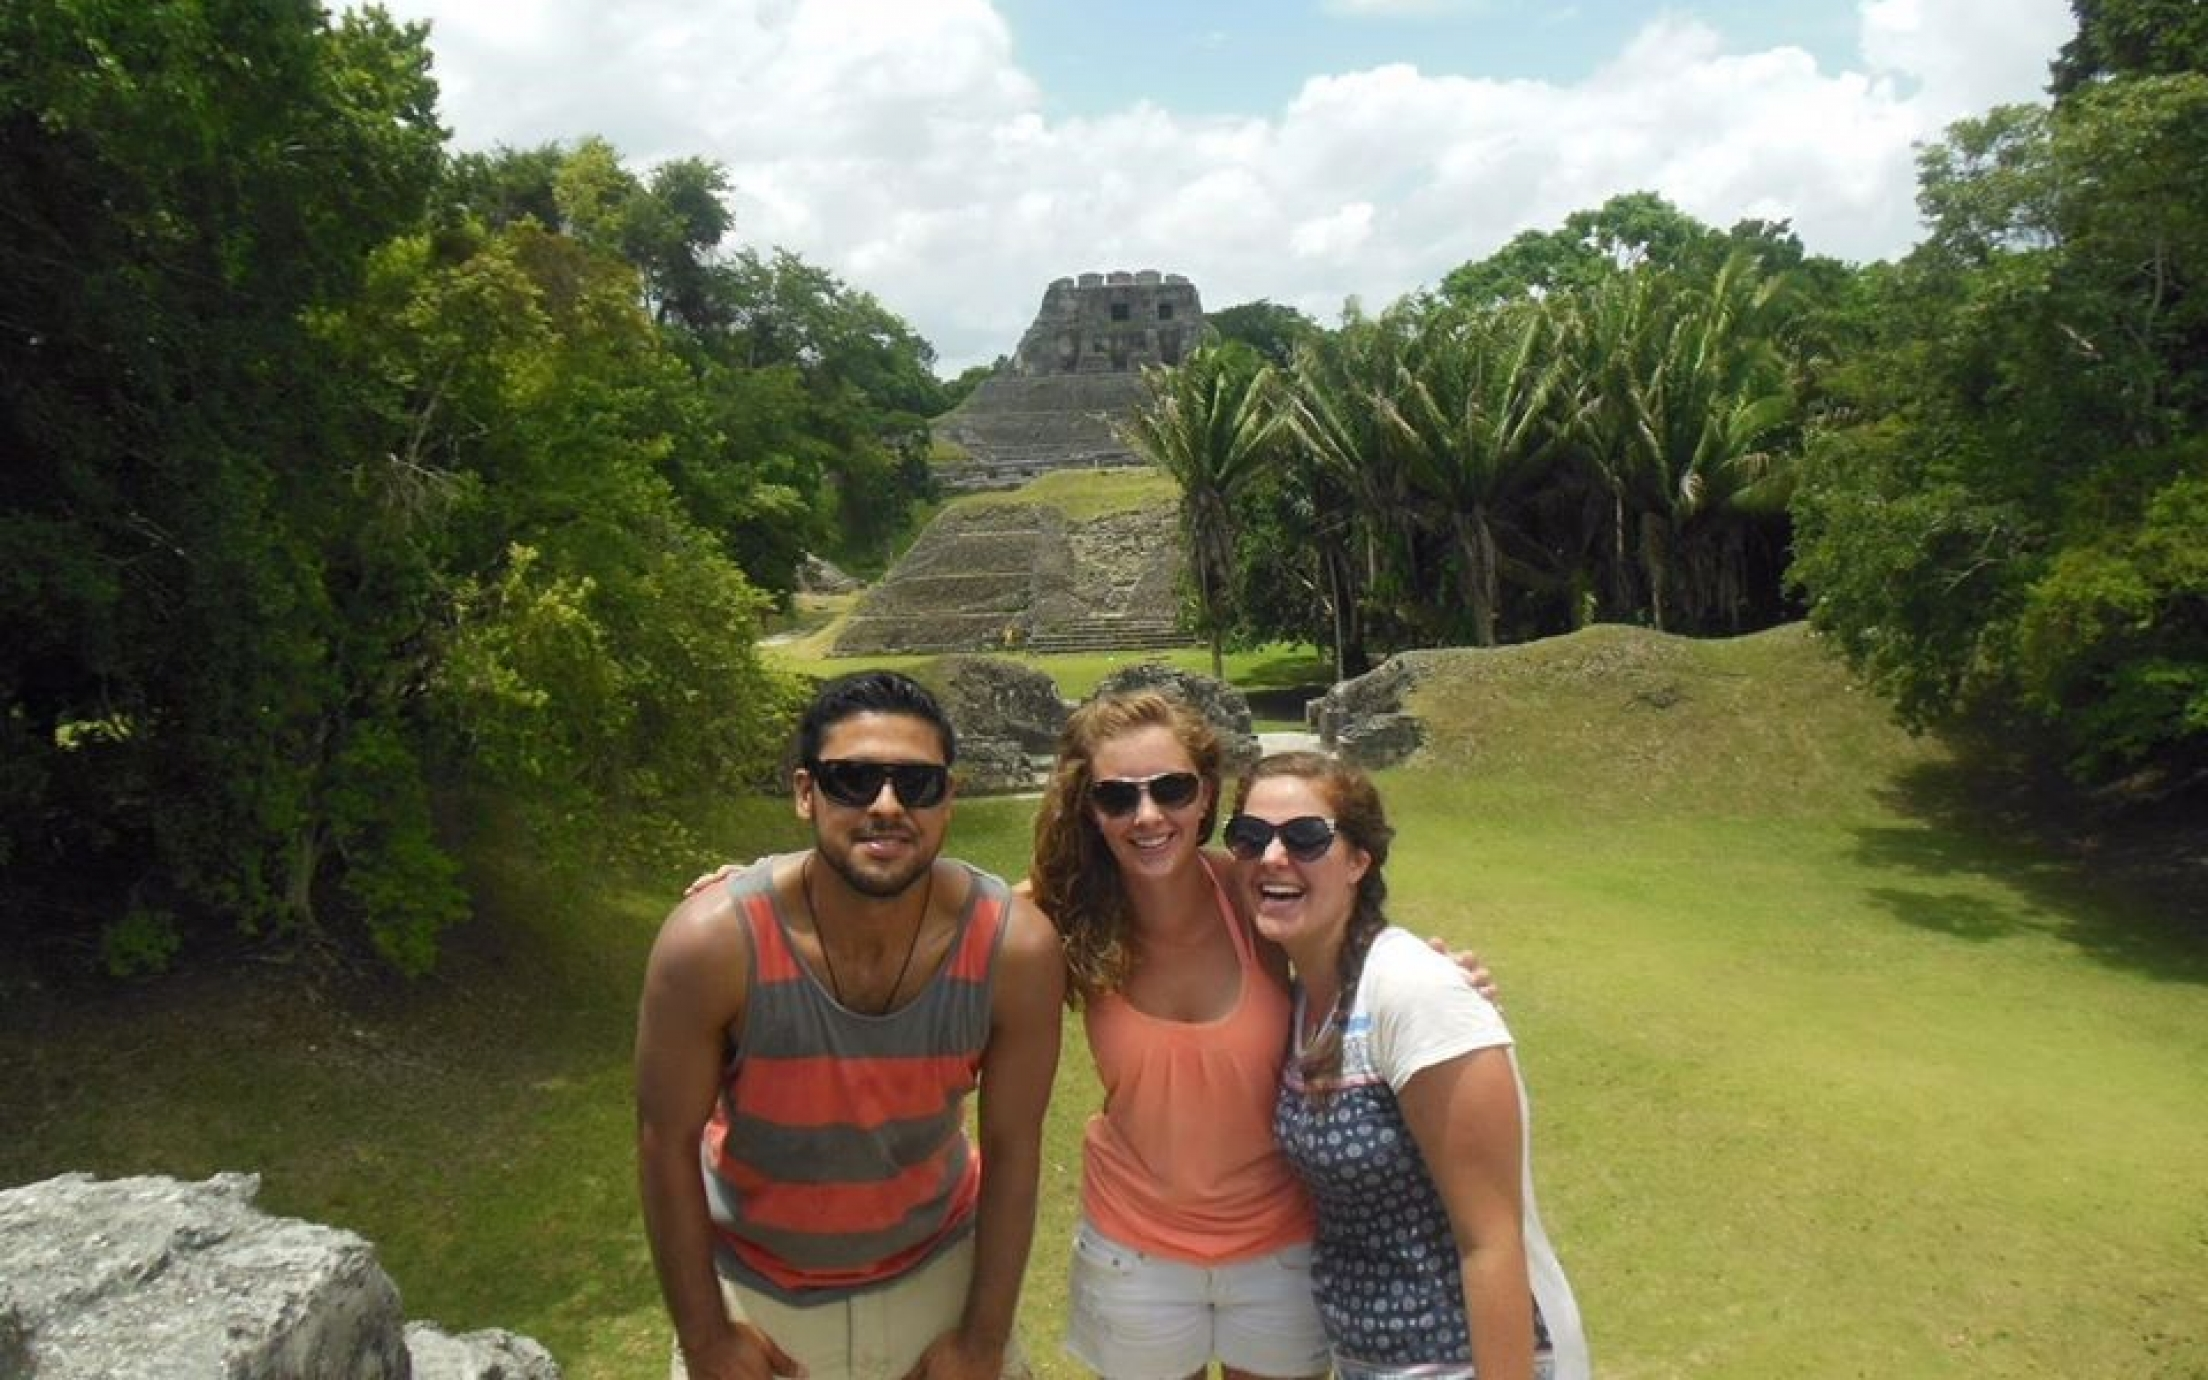 Taylor Jenks (pictured in center) at Xunantunich - a Mayan ruins site in western Belize.